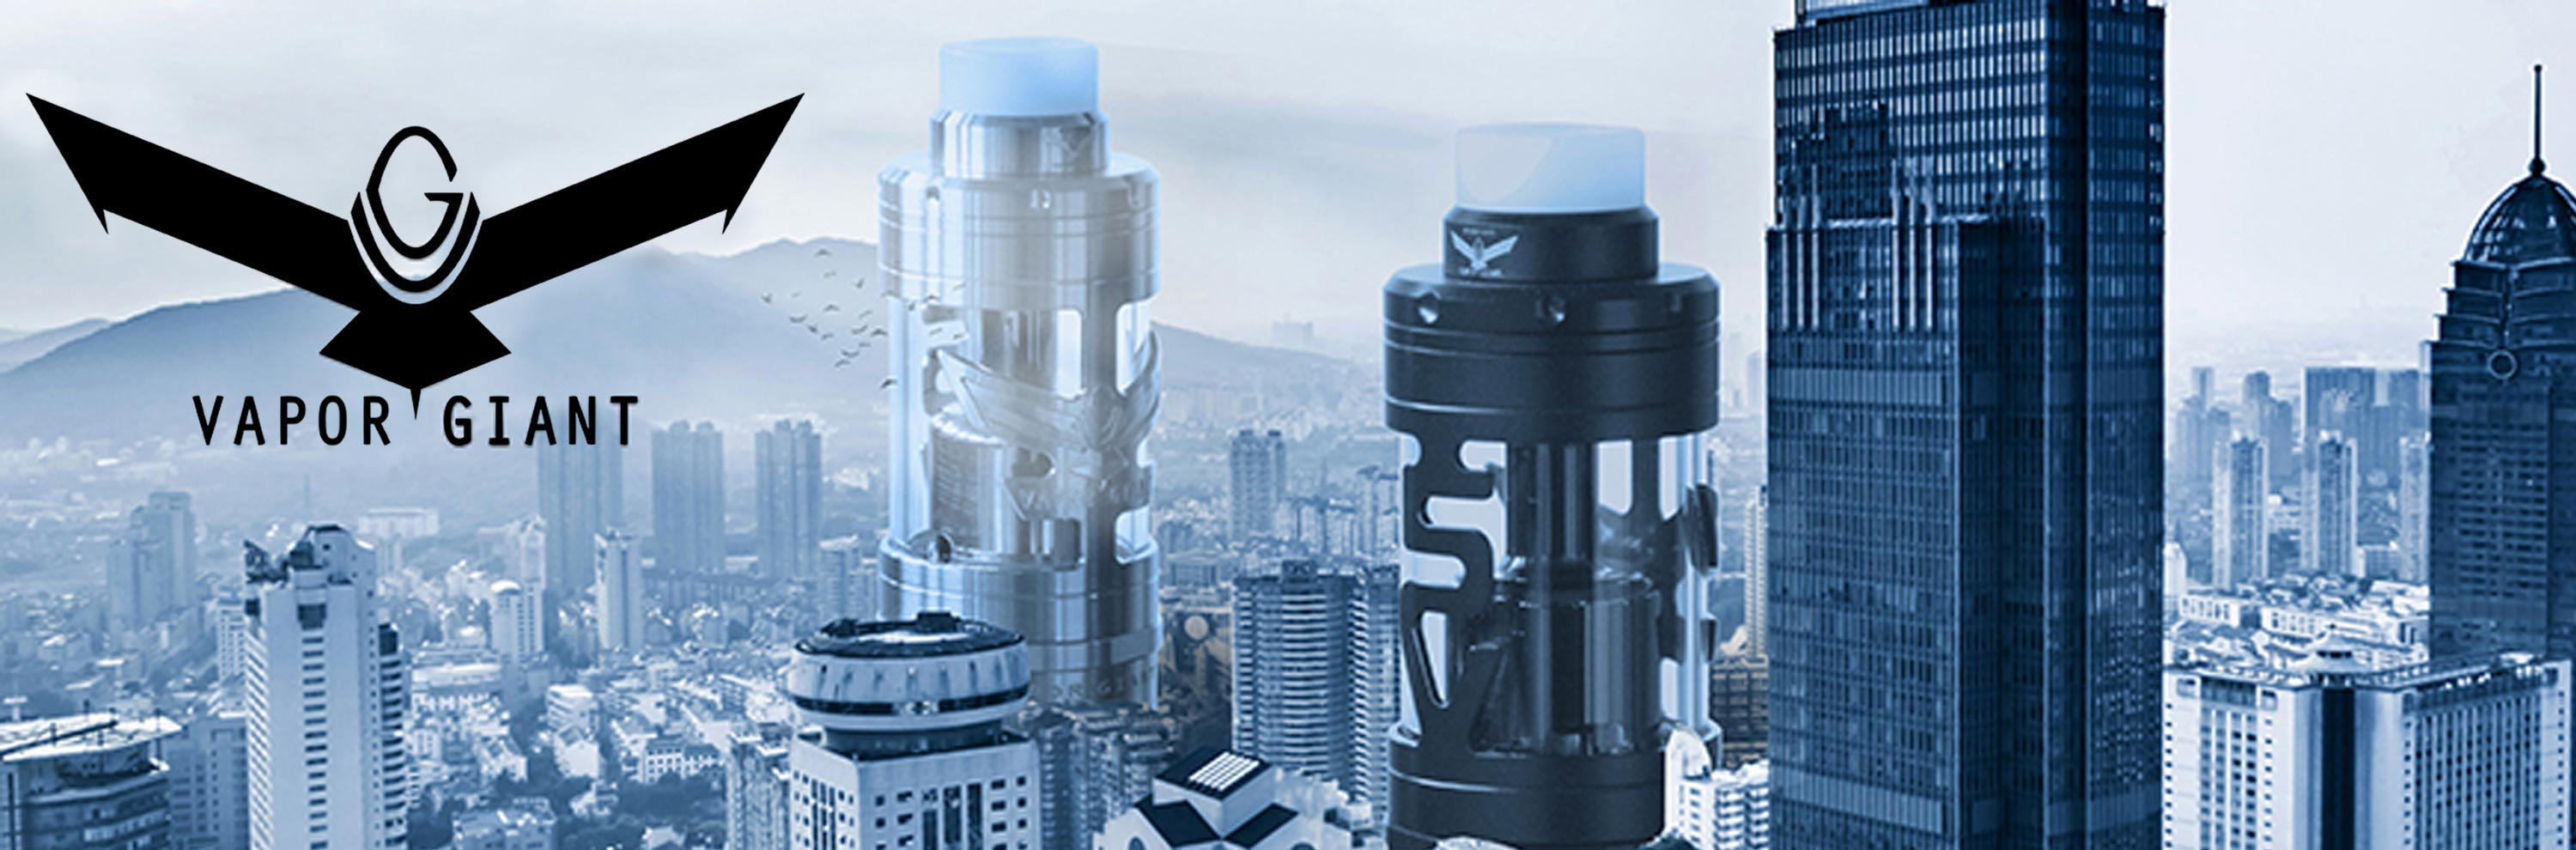 New_banner_vapor_giant_city